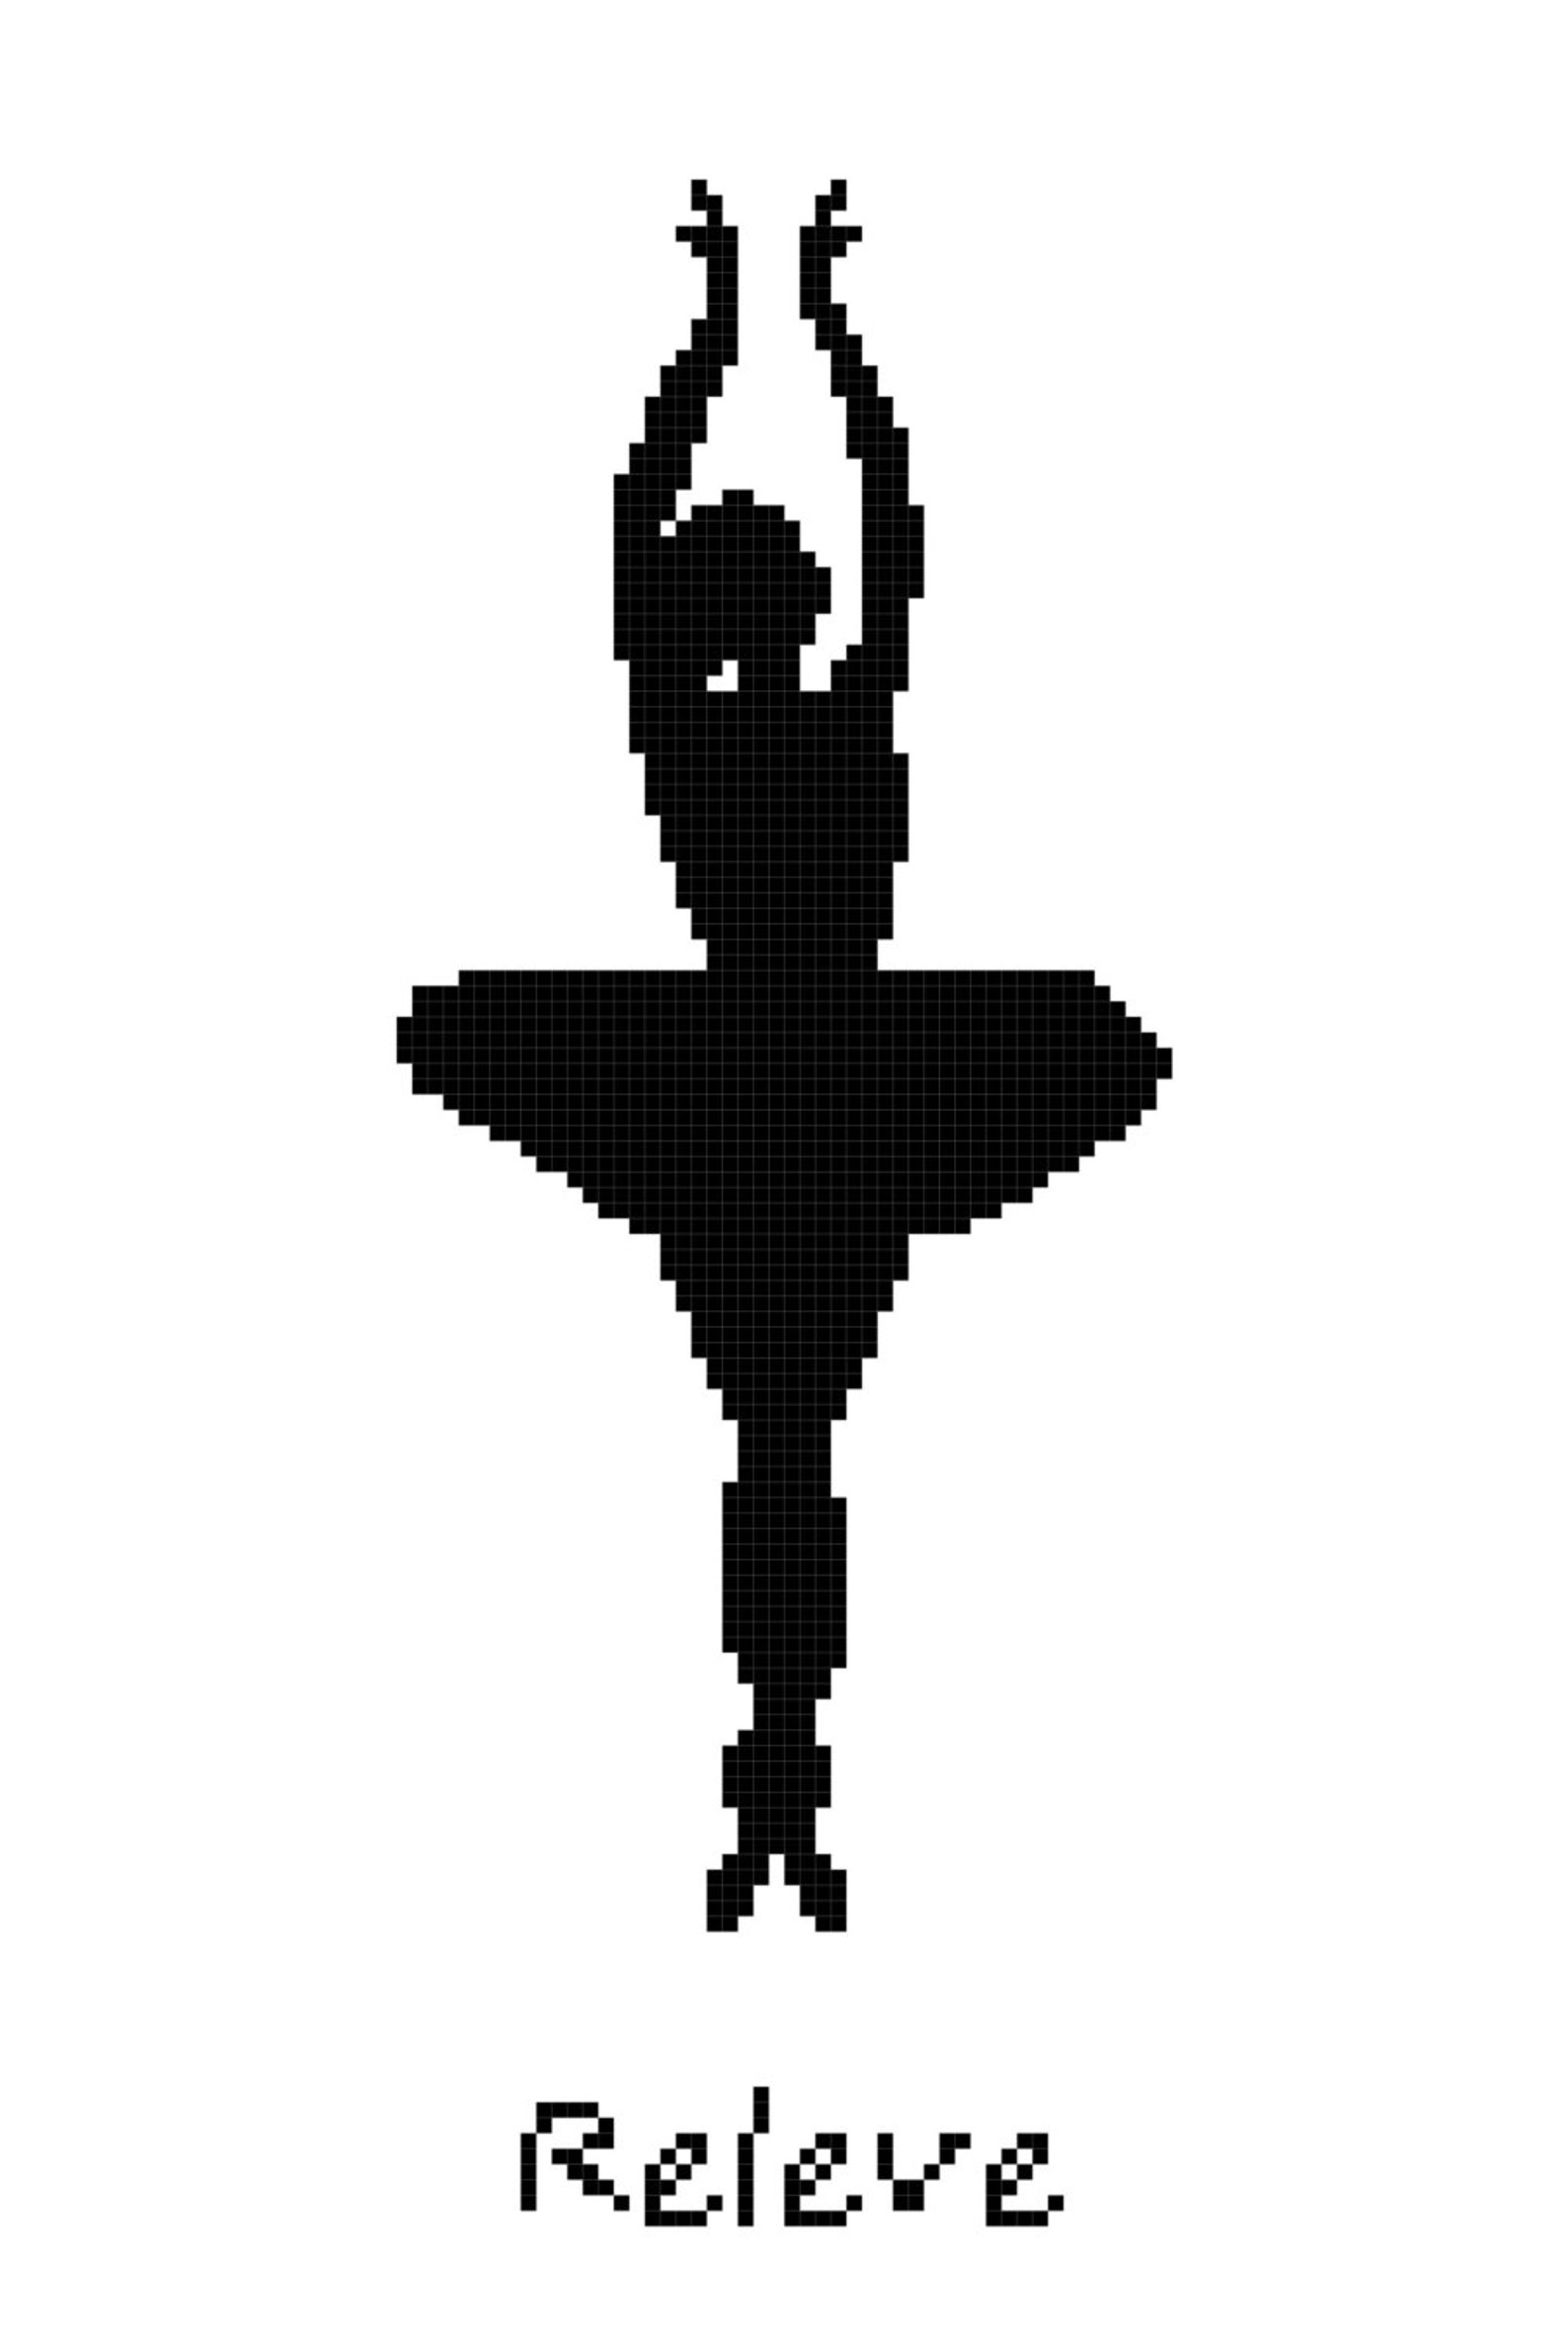 ballet position releve wall art cross stitch pattern